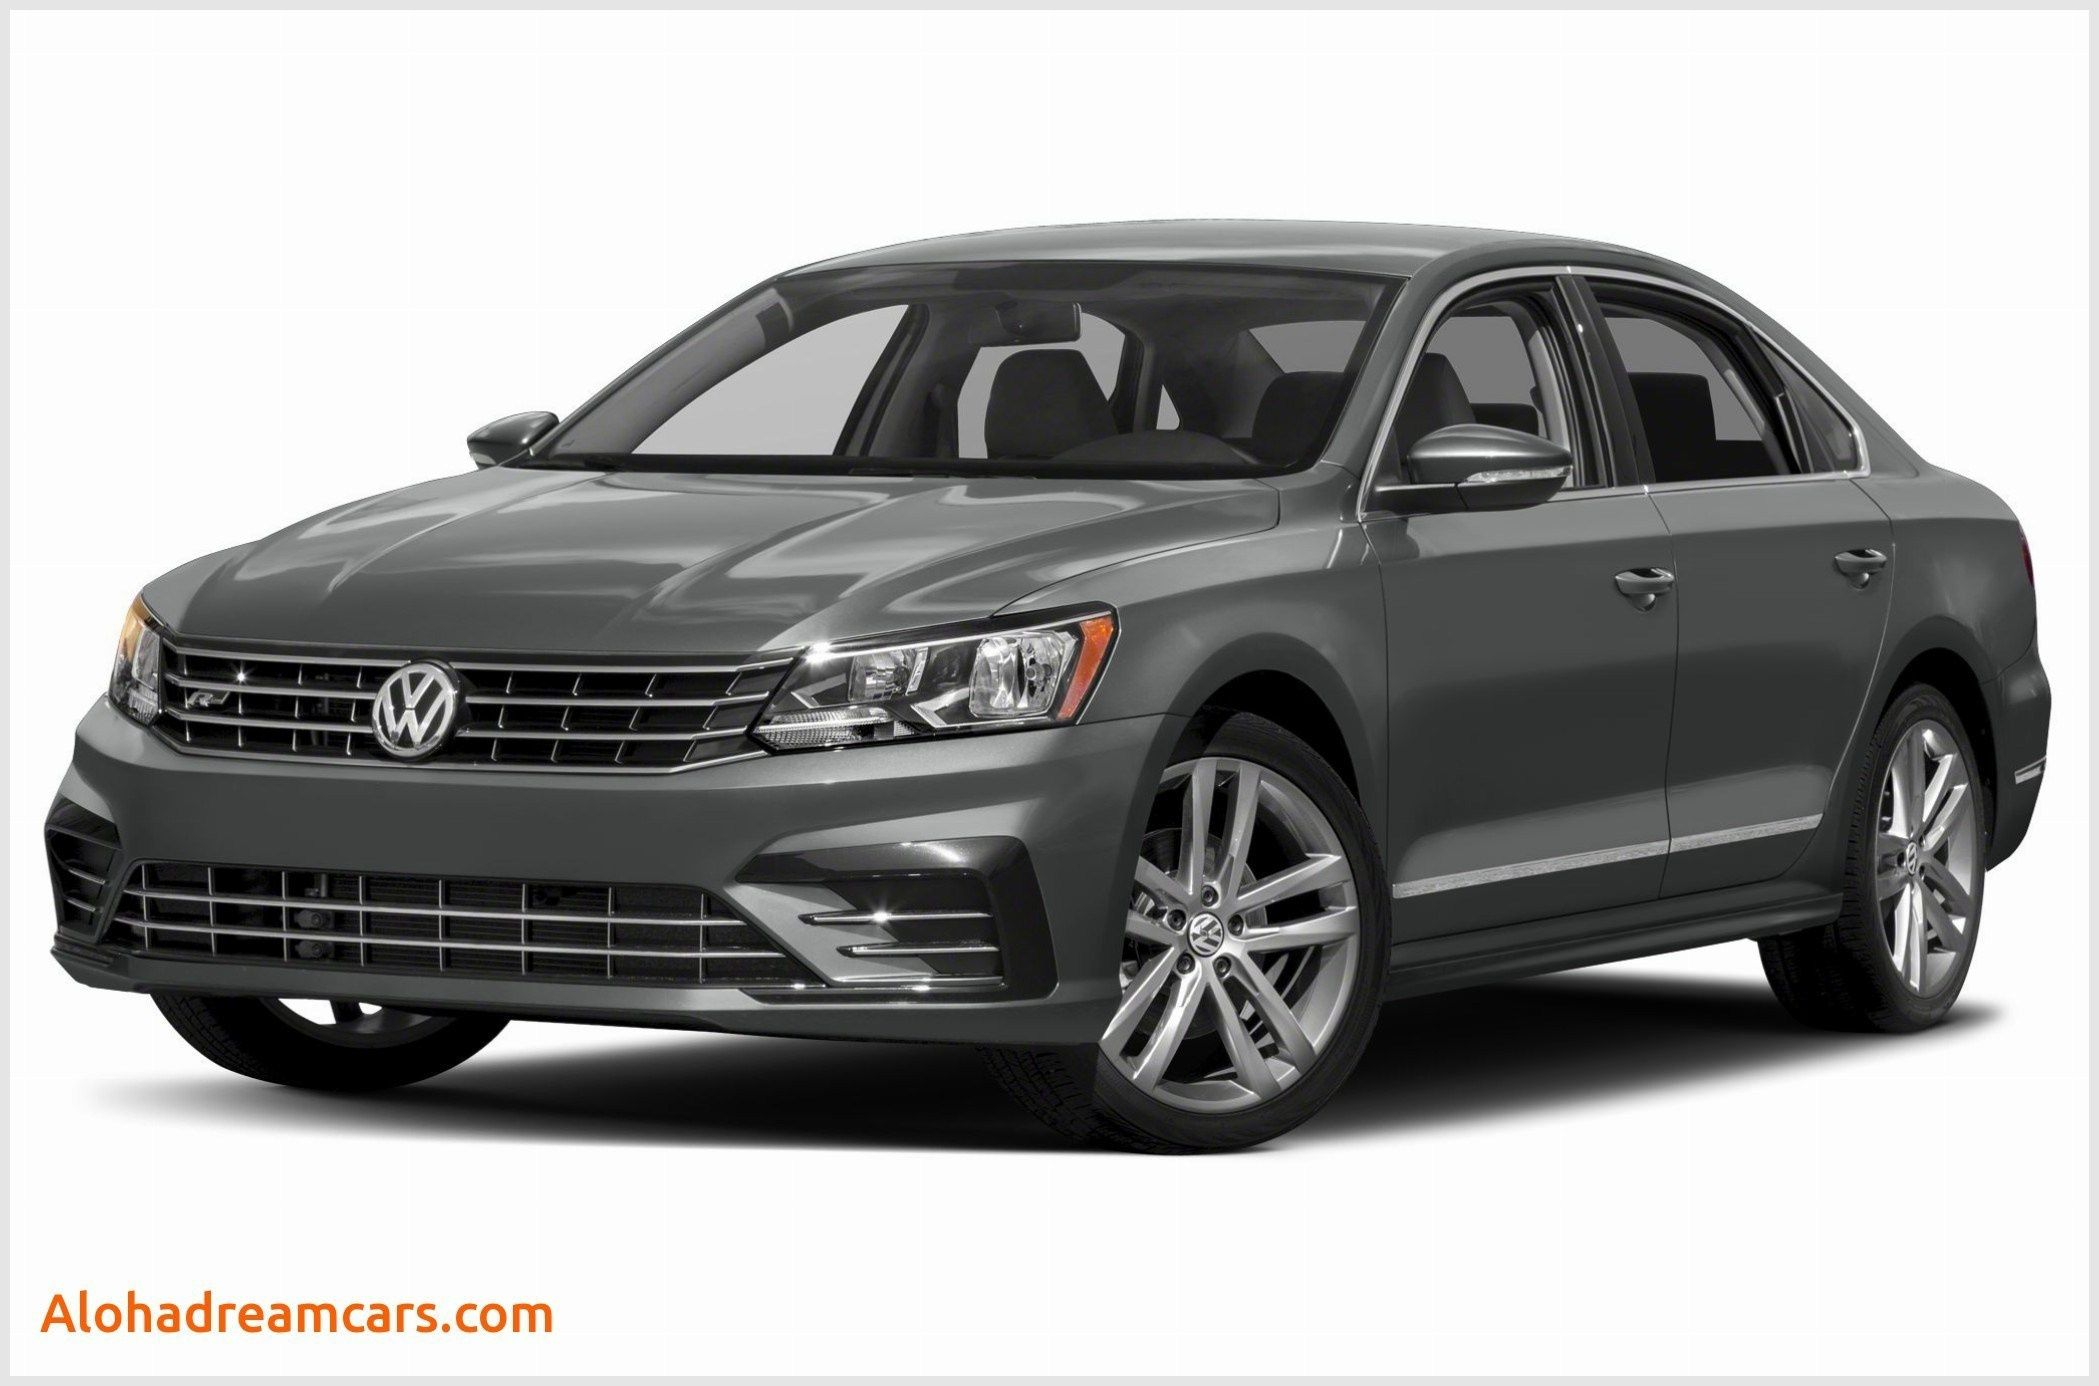 Pin by Cars Blog on Vw sharan, Vw passat, Car